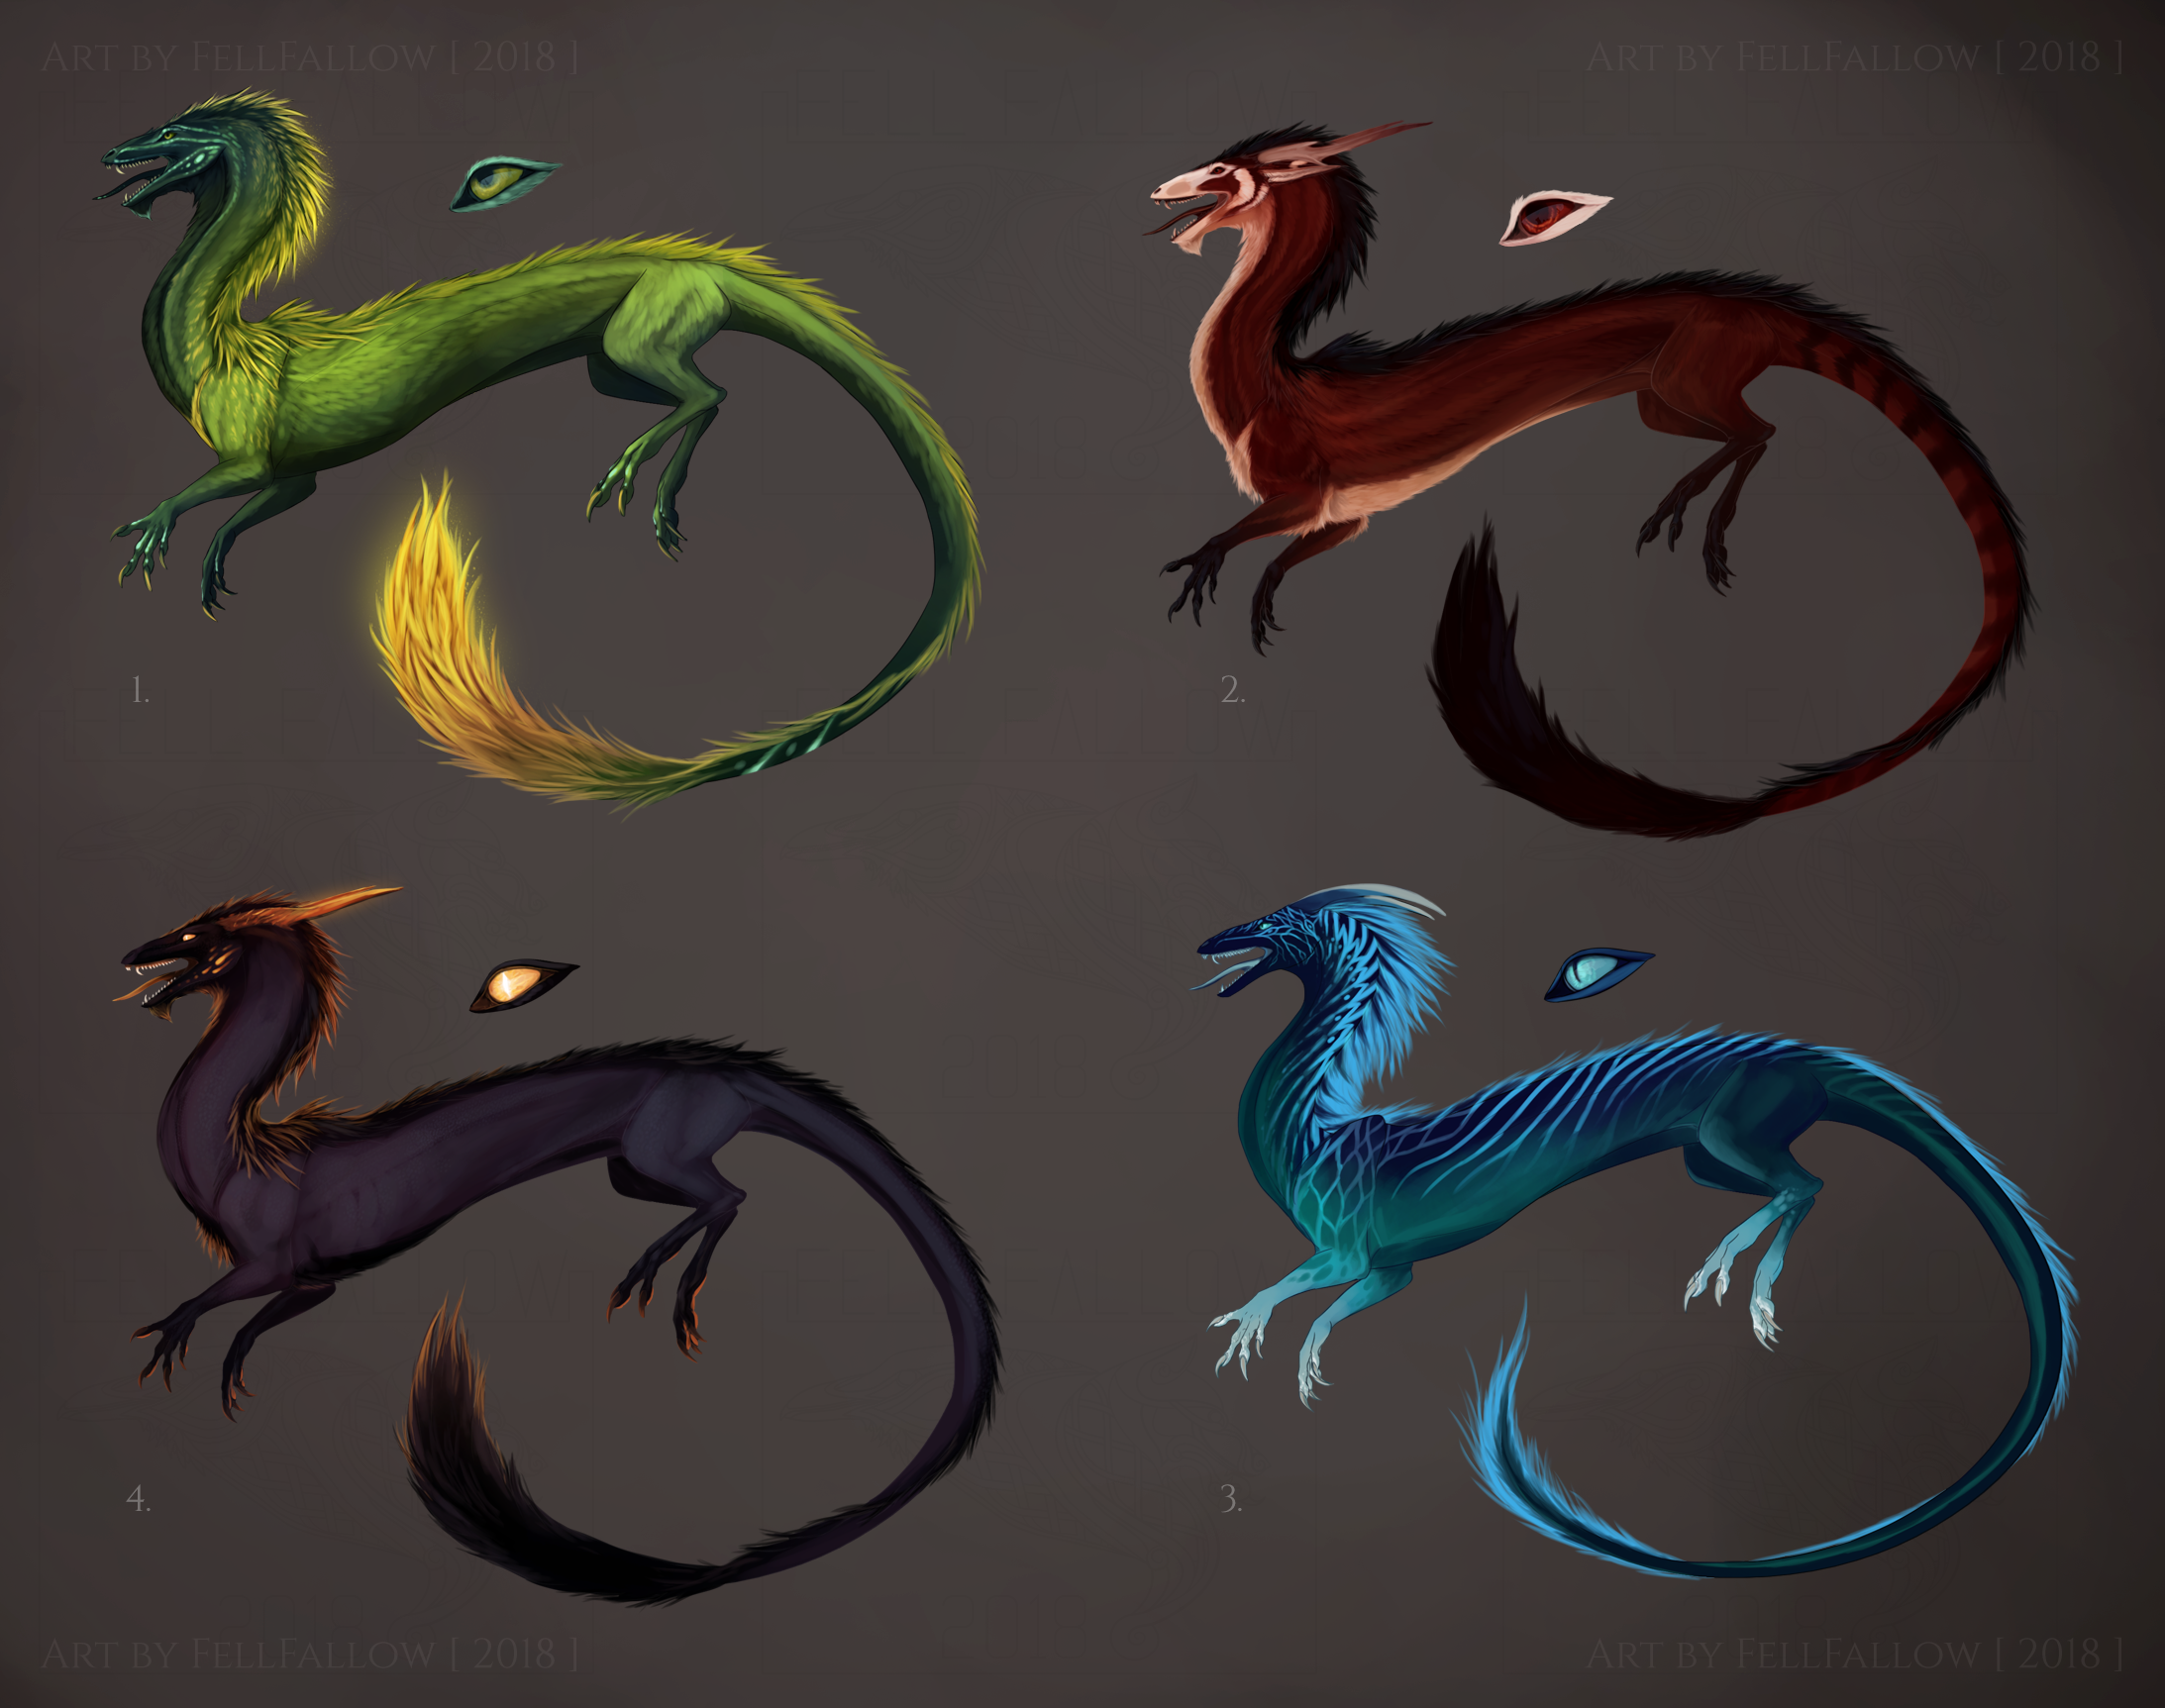 [ CLOSED ] Eastern Dragon Adopts [SB 15]